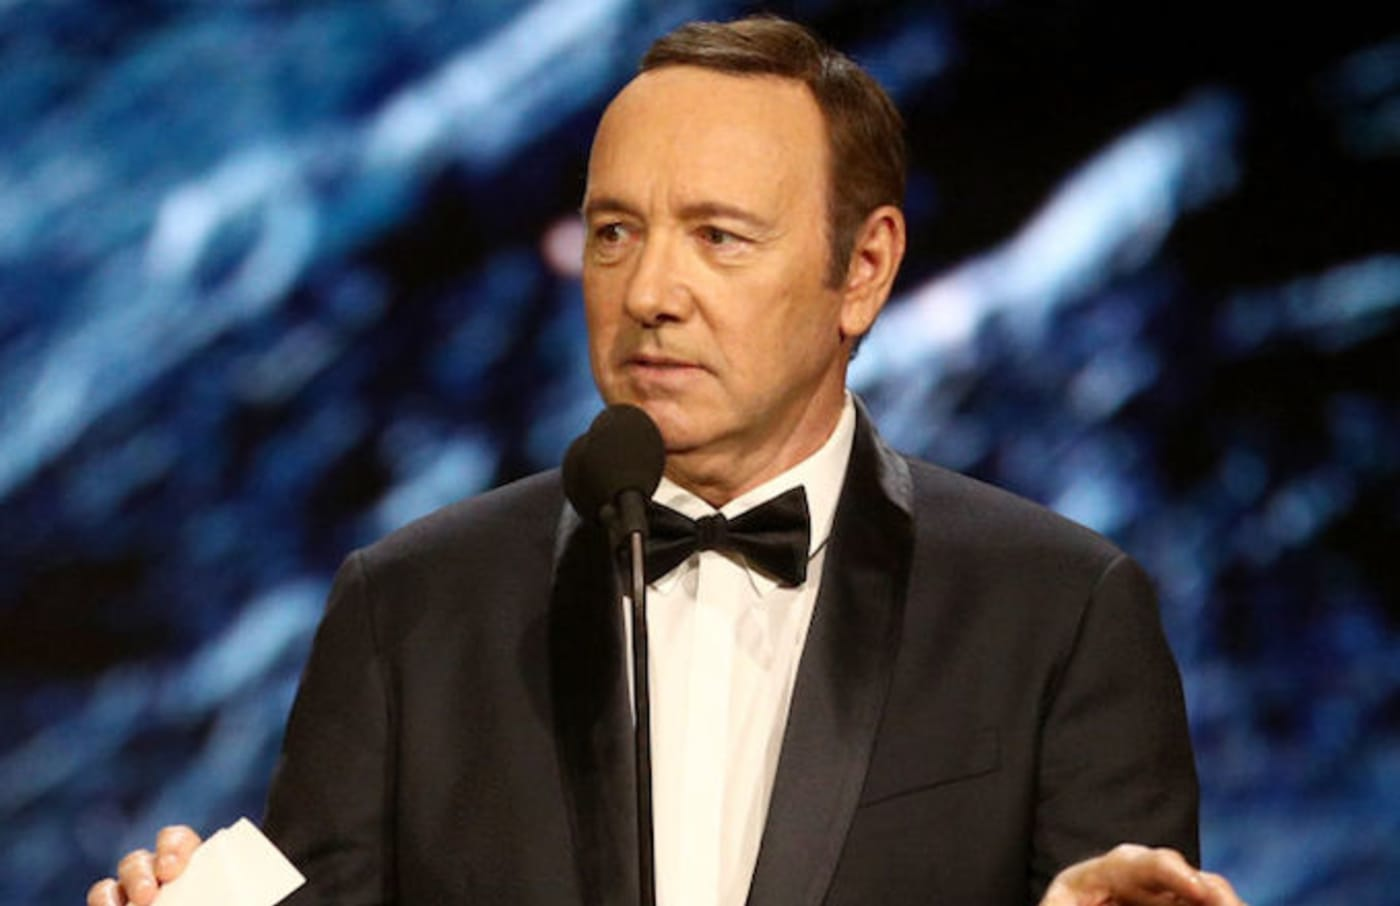 Kevin Spacey police footage